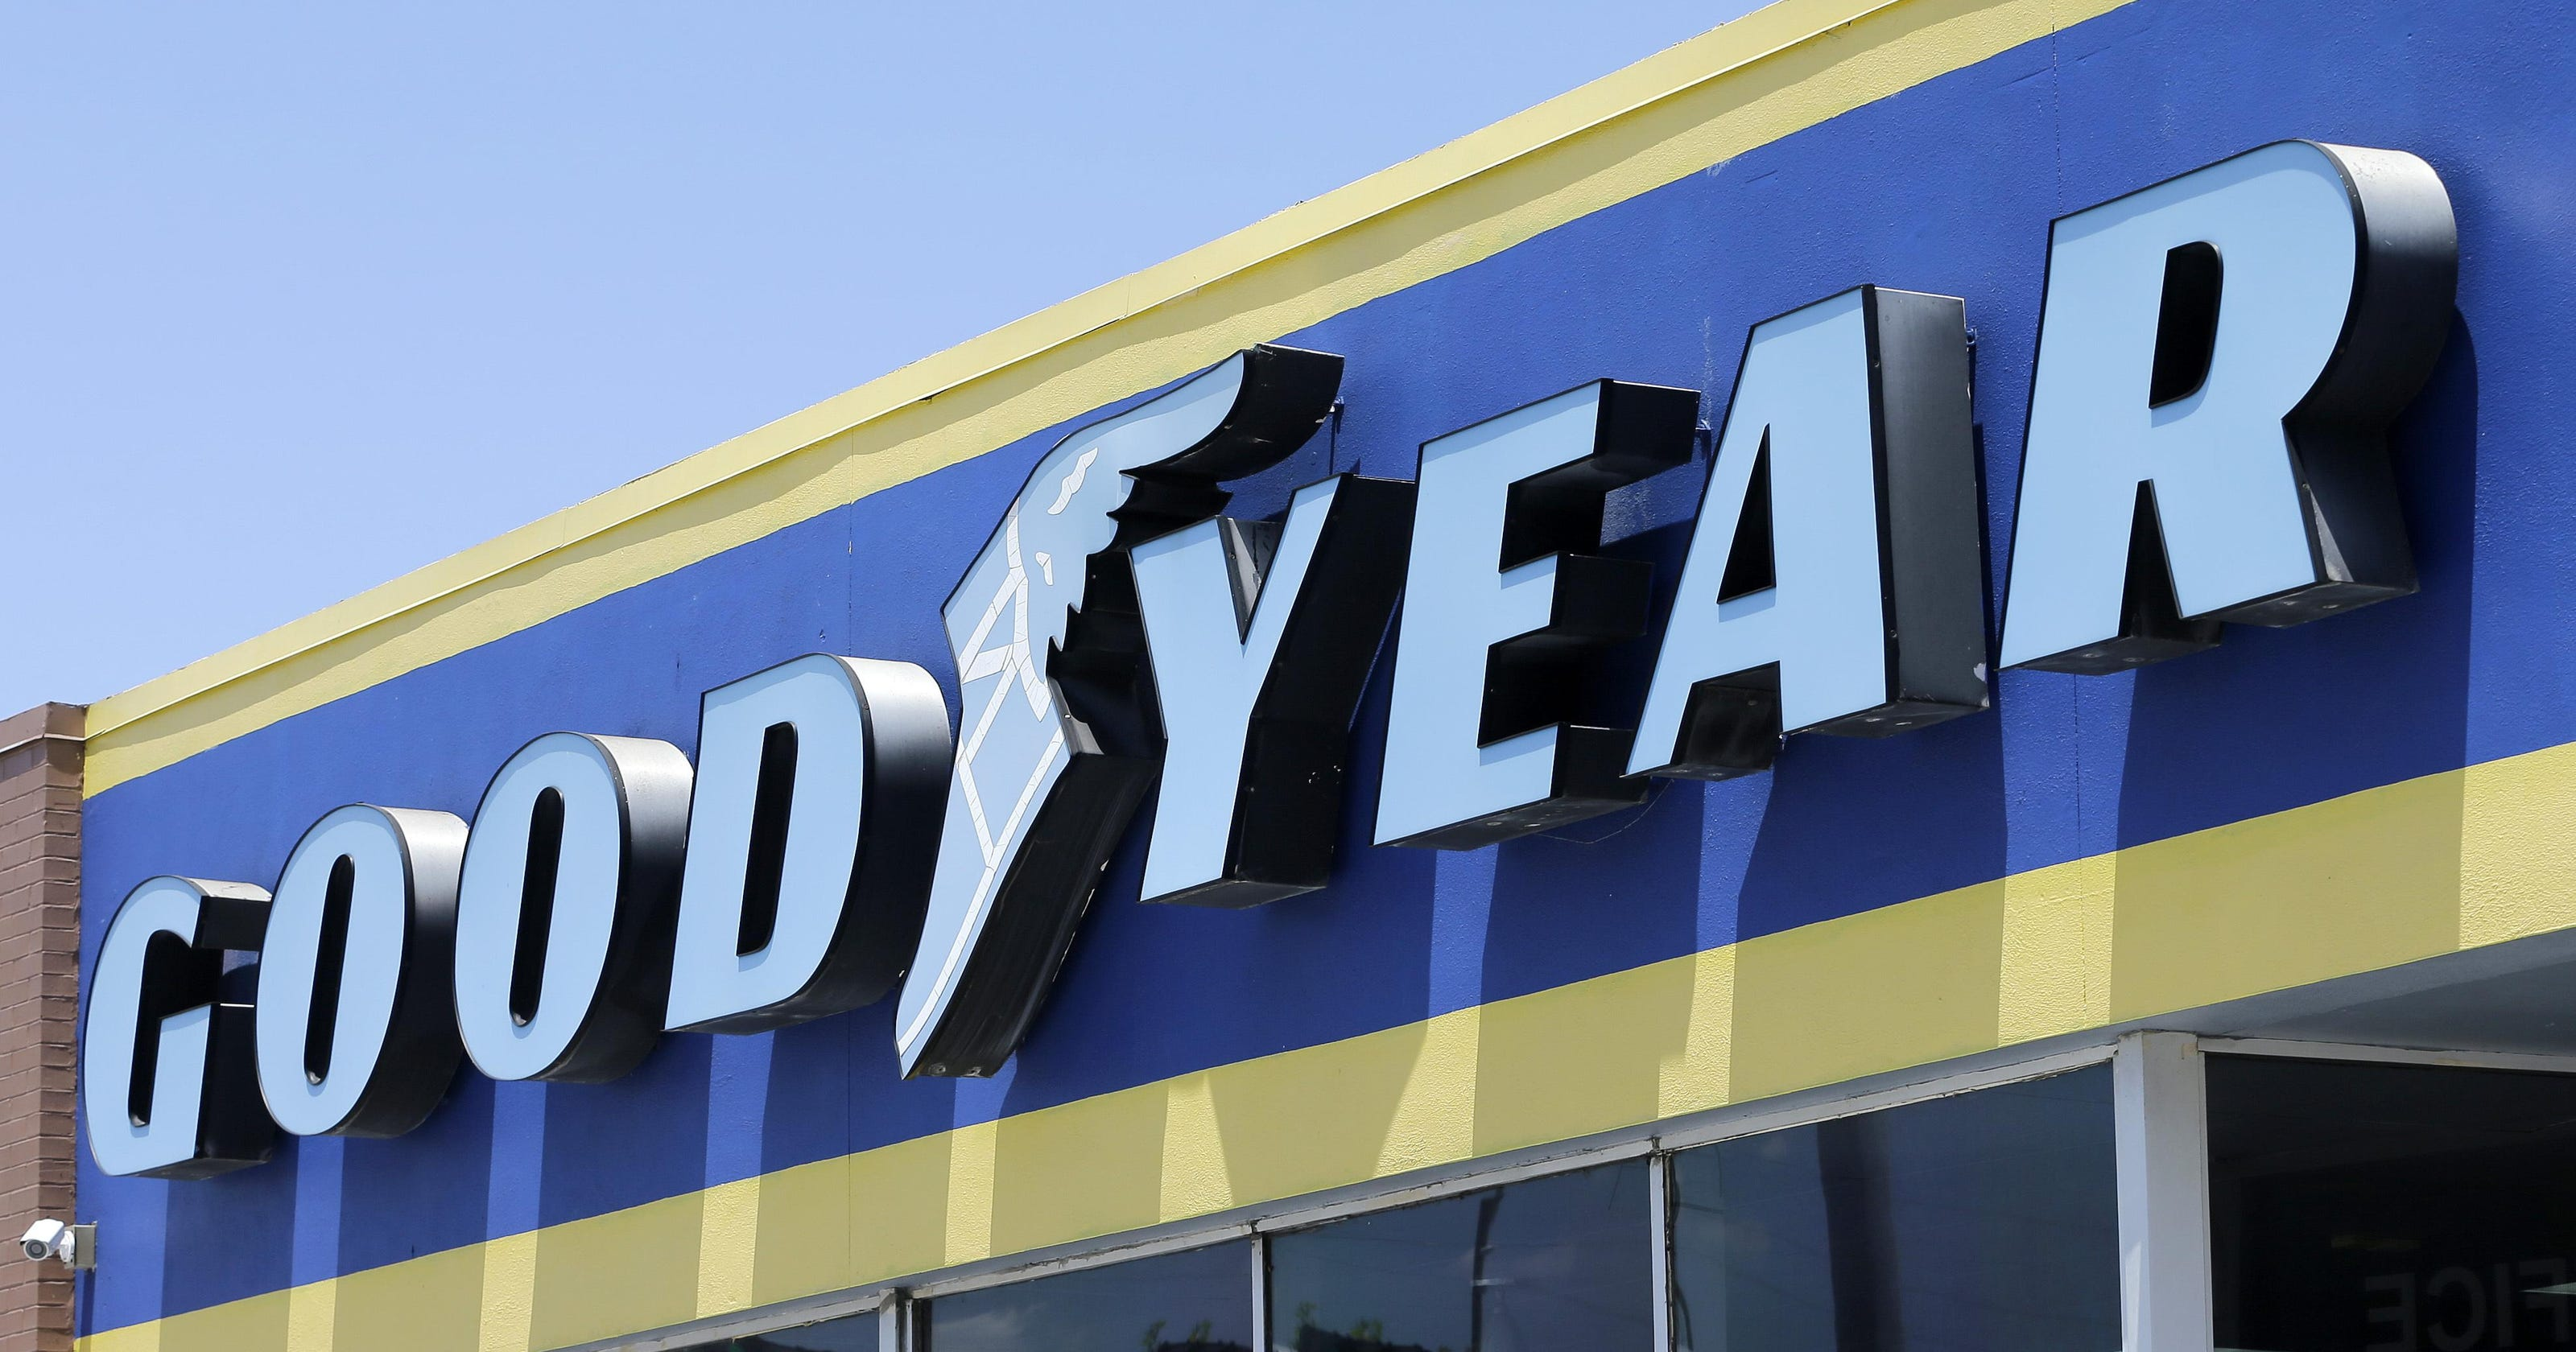 Gov't: Goodyear tires may have caused 95 deaths or injuries